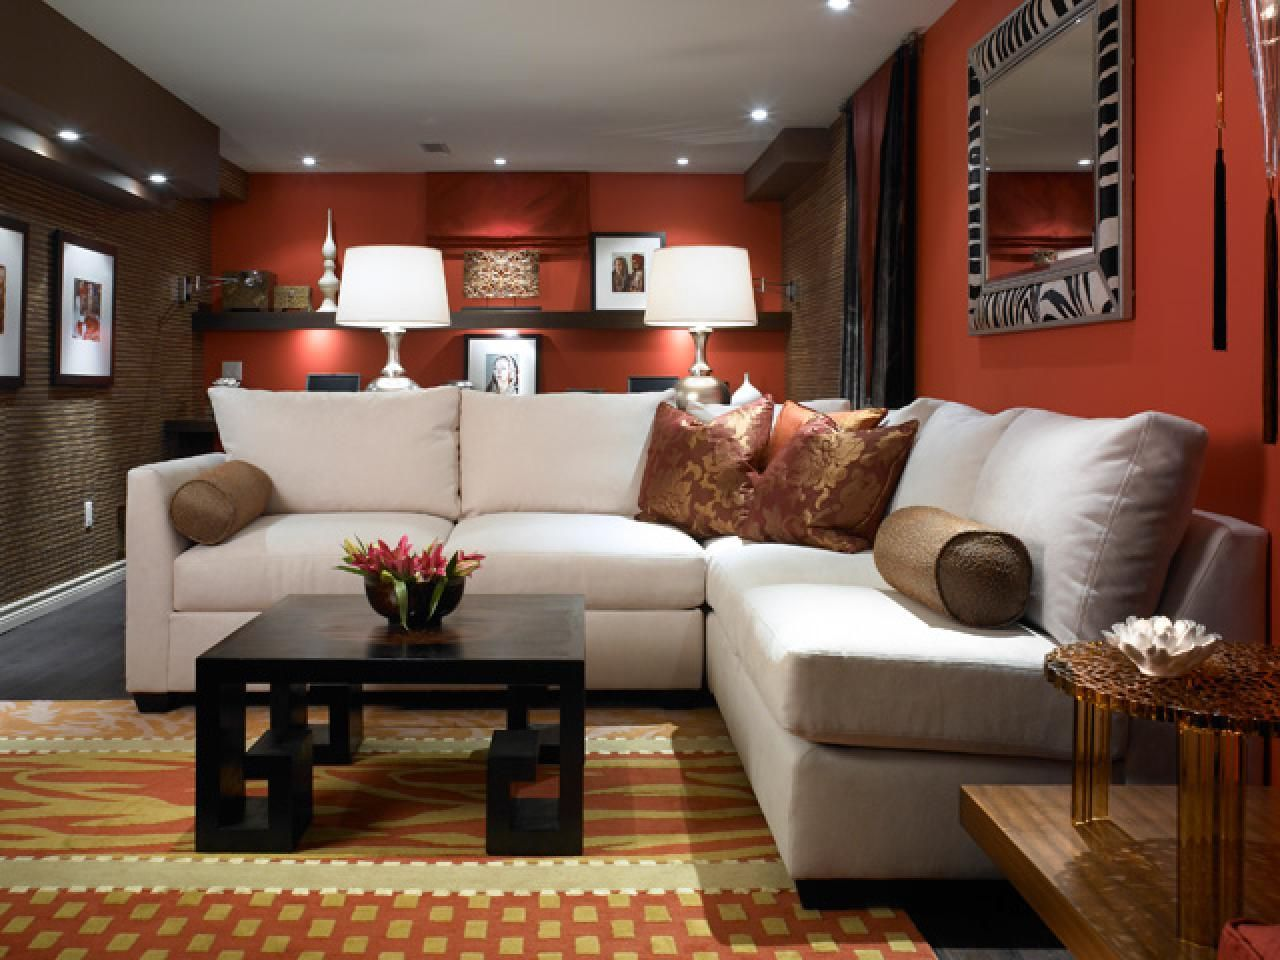 Basement Living Room Designs Simple Basement Makeover Ideas From Candice Olson  Basement Makeover Design Ideas